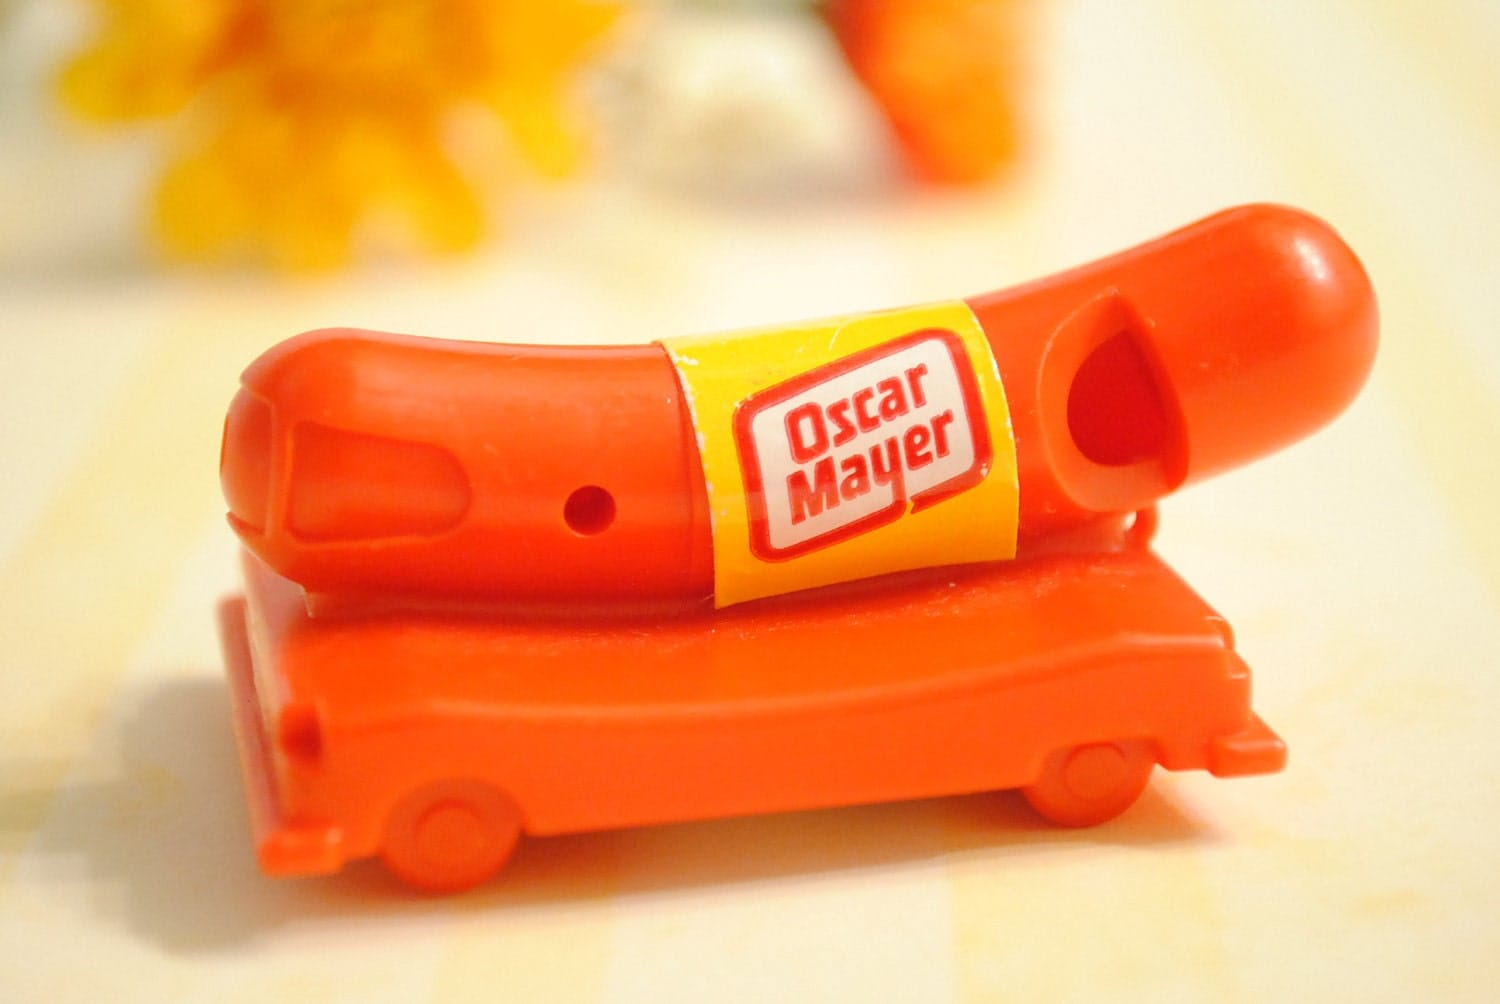 Collection 7ee674f8 D560 11e6 B0ac 77f5cb9dd22d furthermore Oscar Mayer Wienermobile Bank On Wheels as well Wienermobile also Trollikins Mini Troll Charm Imperial furthermore 2302820. on oscar mayer wienermobile whistle